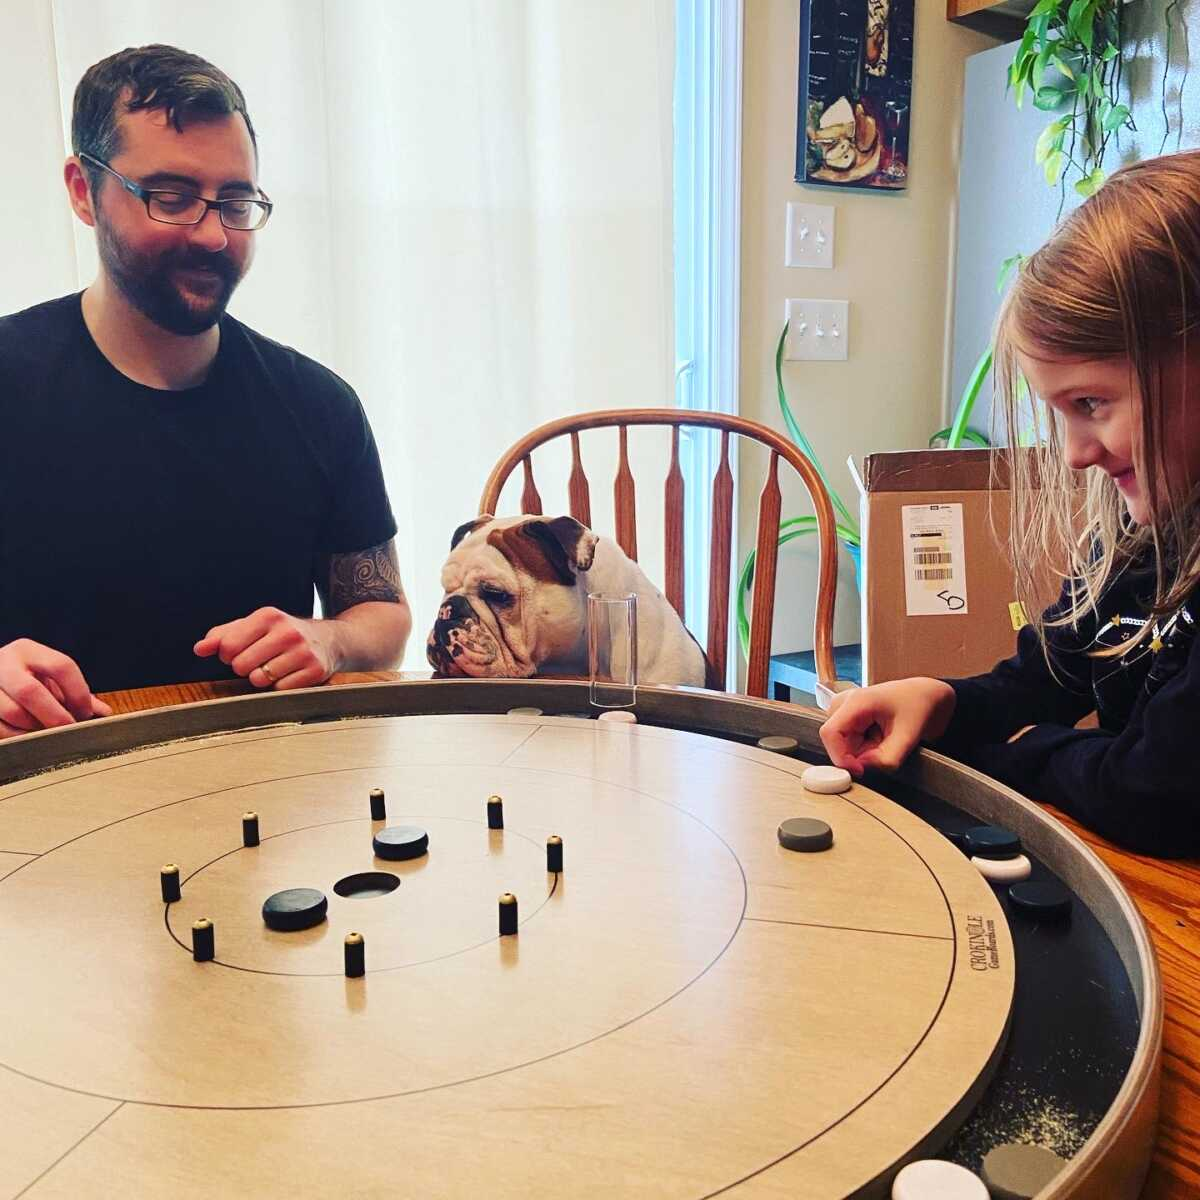 Testimonial Photo Submission from Tristan Ward for Crokinole Game Boards